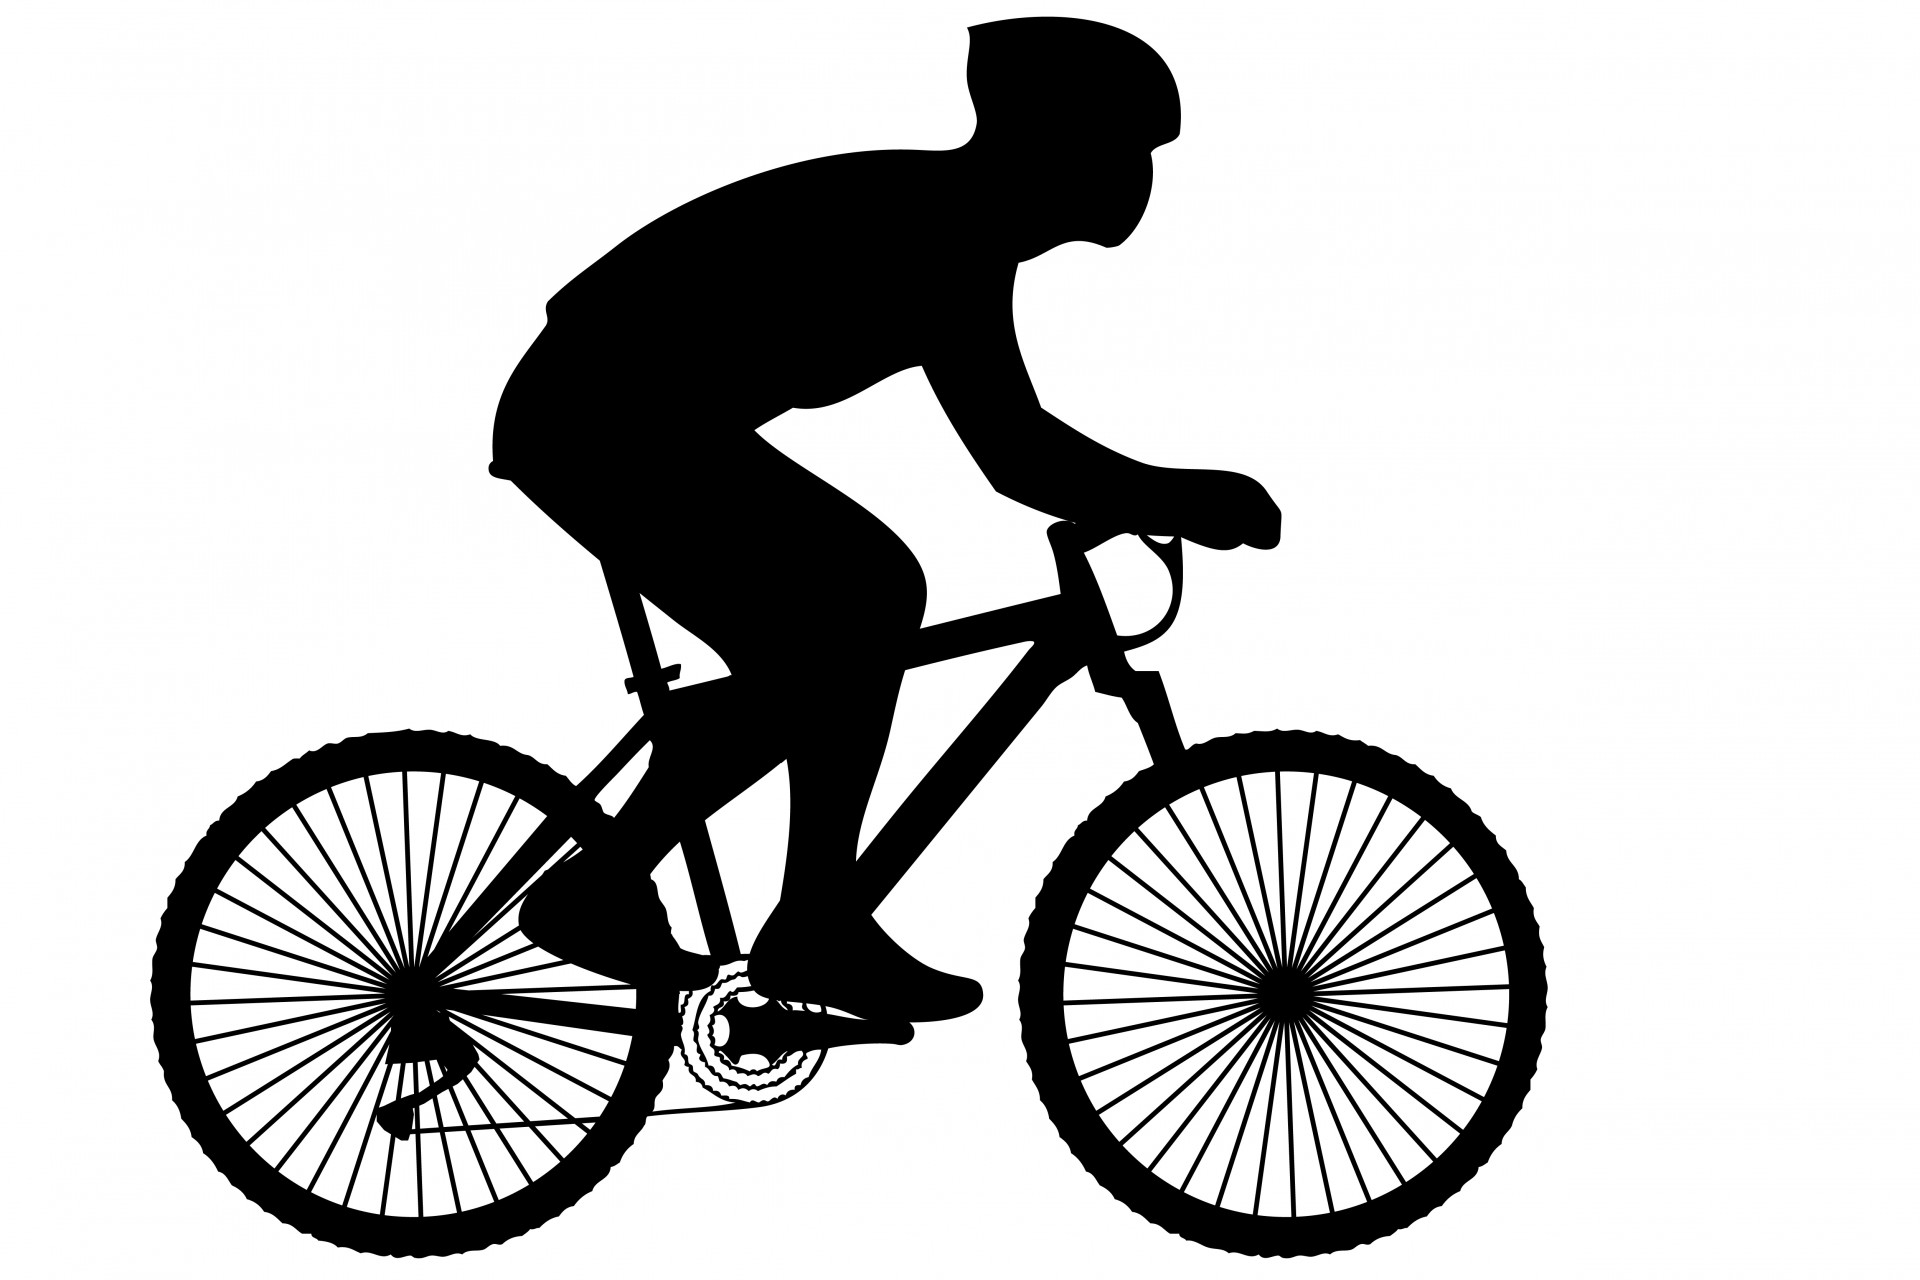 Cyclist black free stock. Bike clipart silhouette